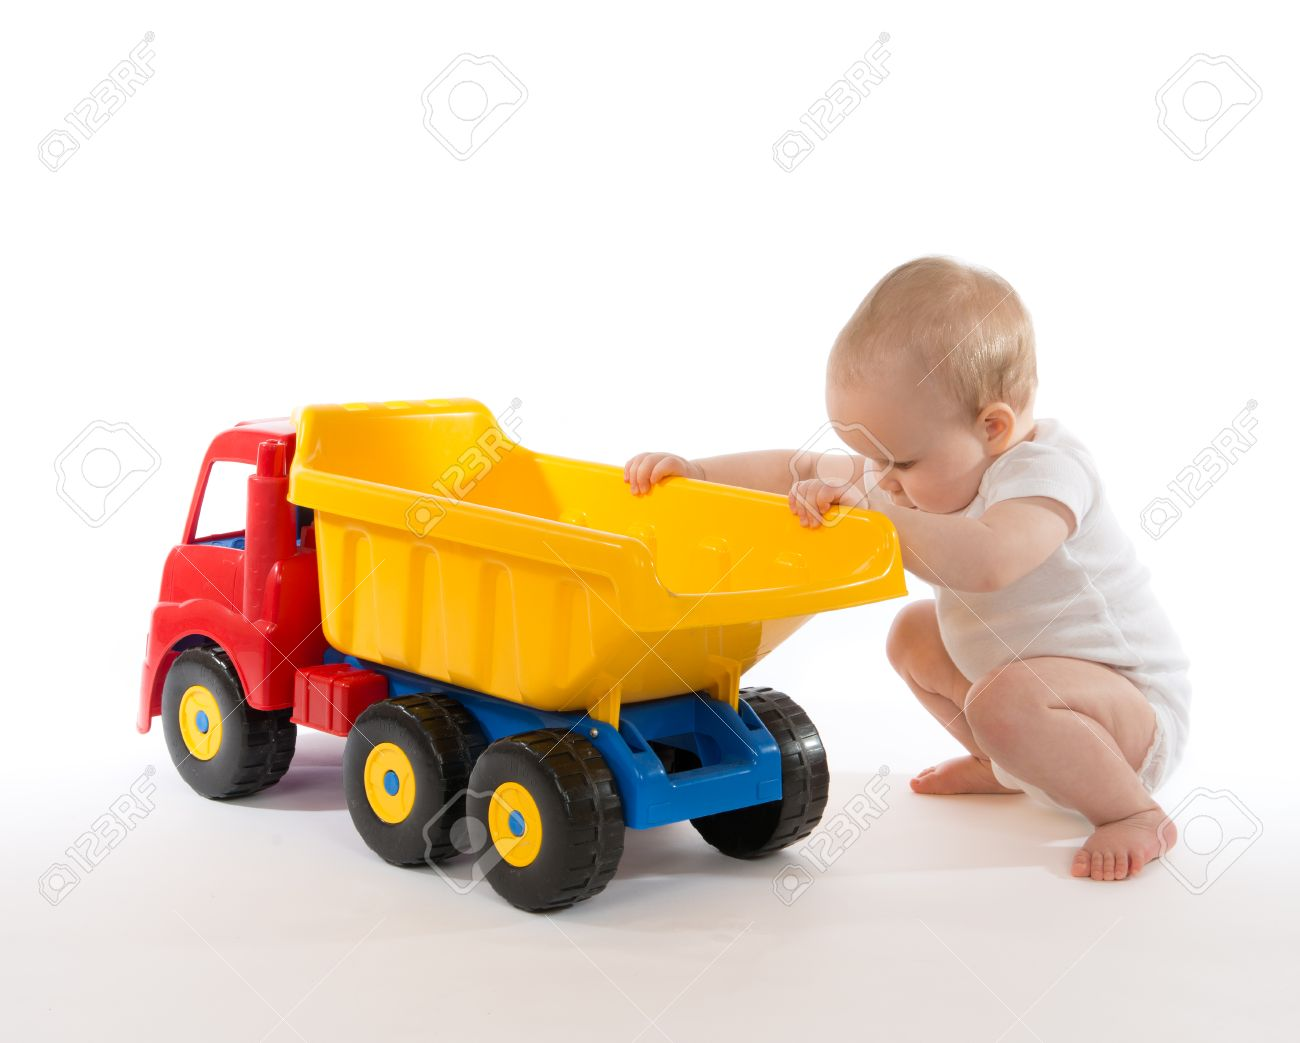 Infant Child Baby Boy Toddler Happy Sitting With Big Toy Car Stock